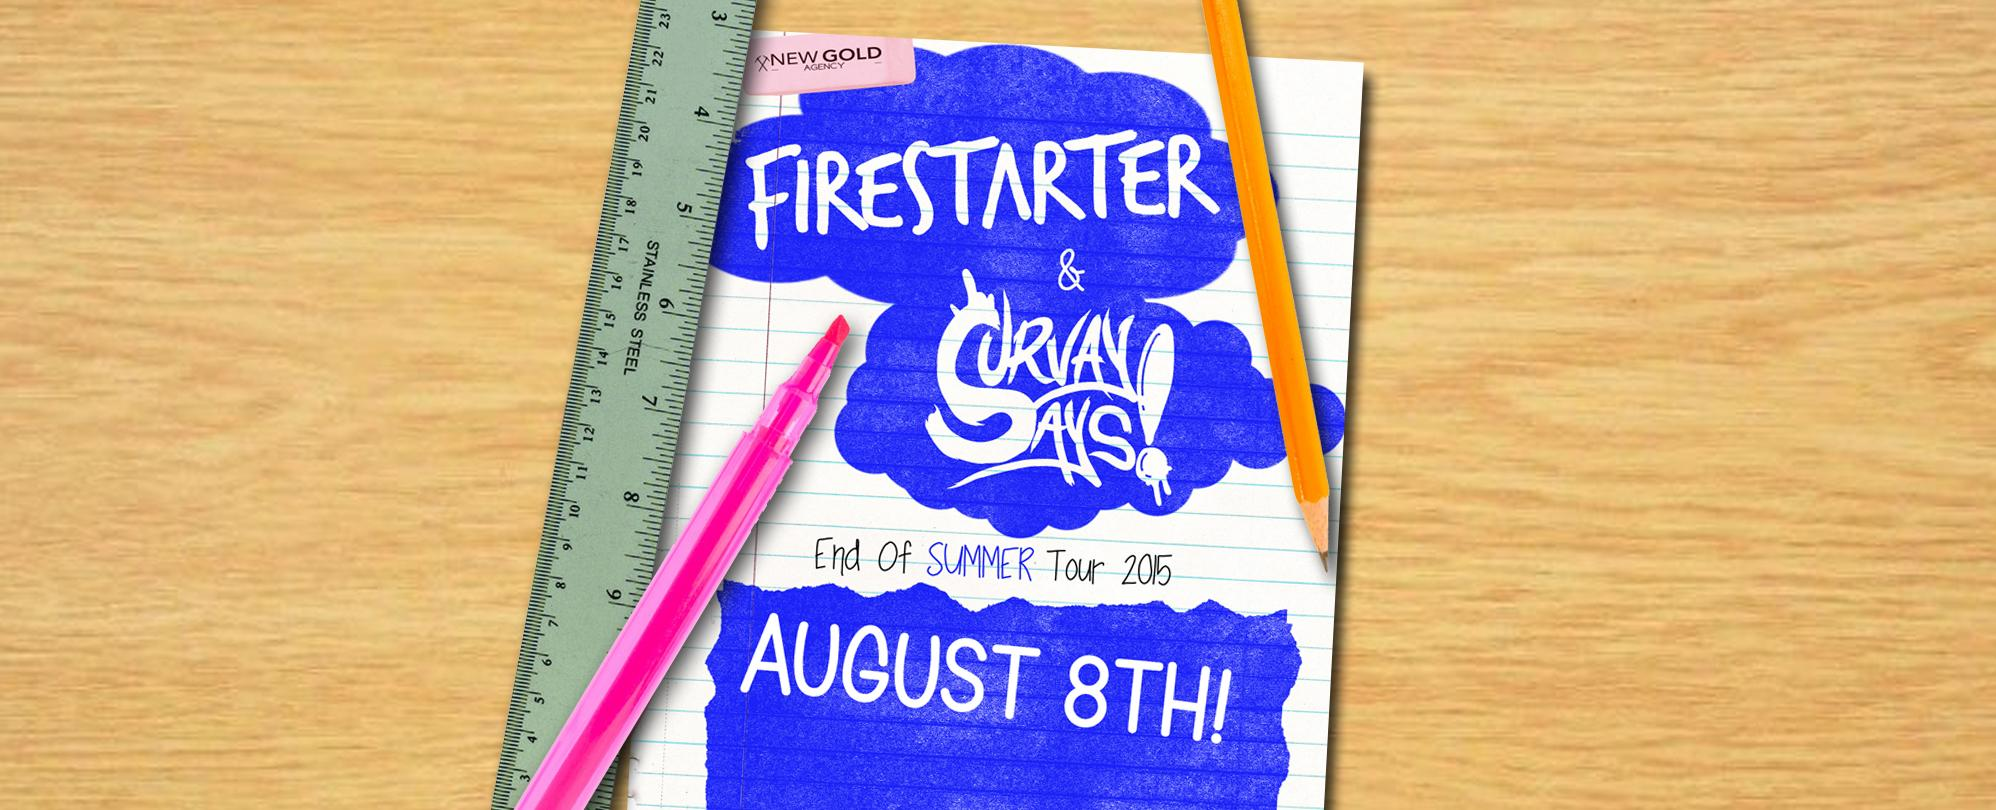 Firestarter & Survay Says! End of Summer Tour